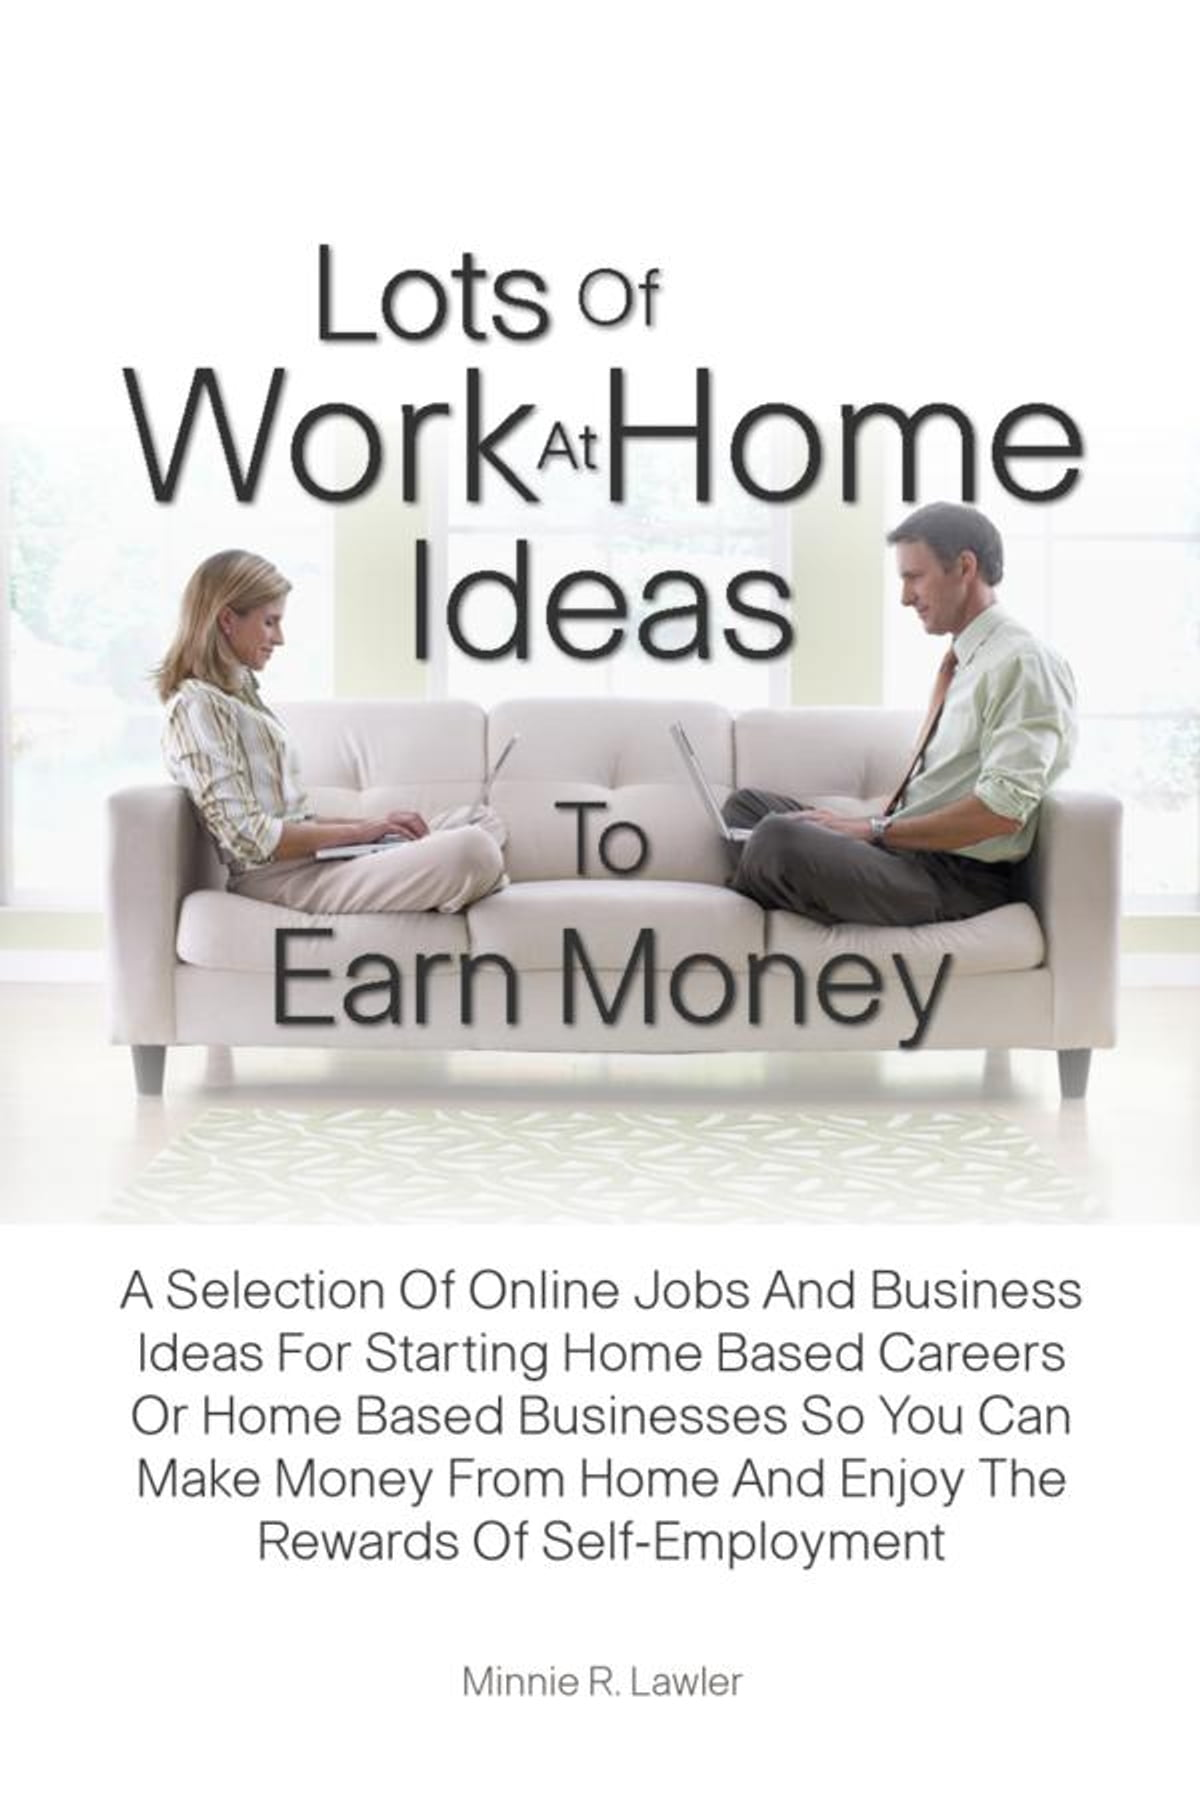 Lots Of Work At Home Ideas To Earn Money 電子書,分類依據Minnie R ...